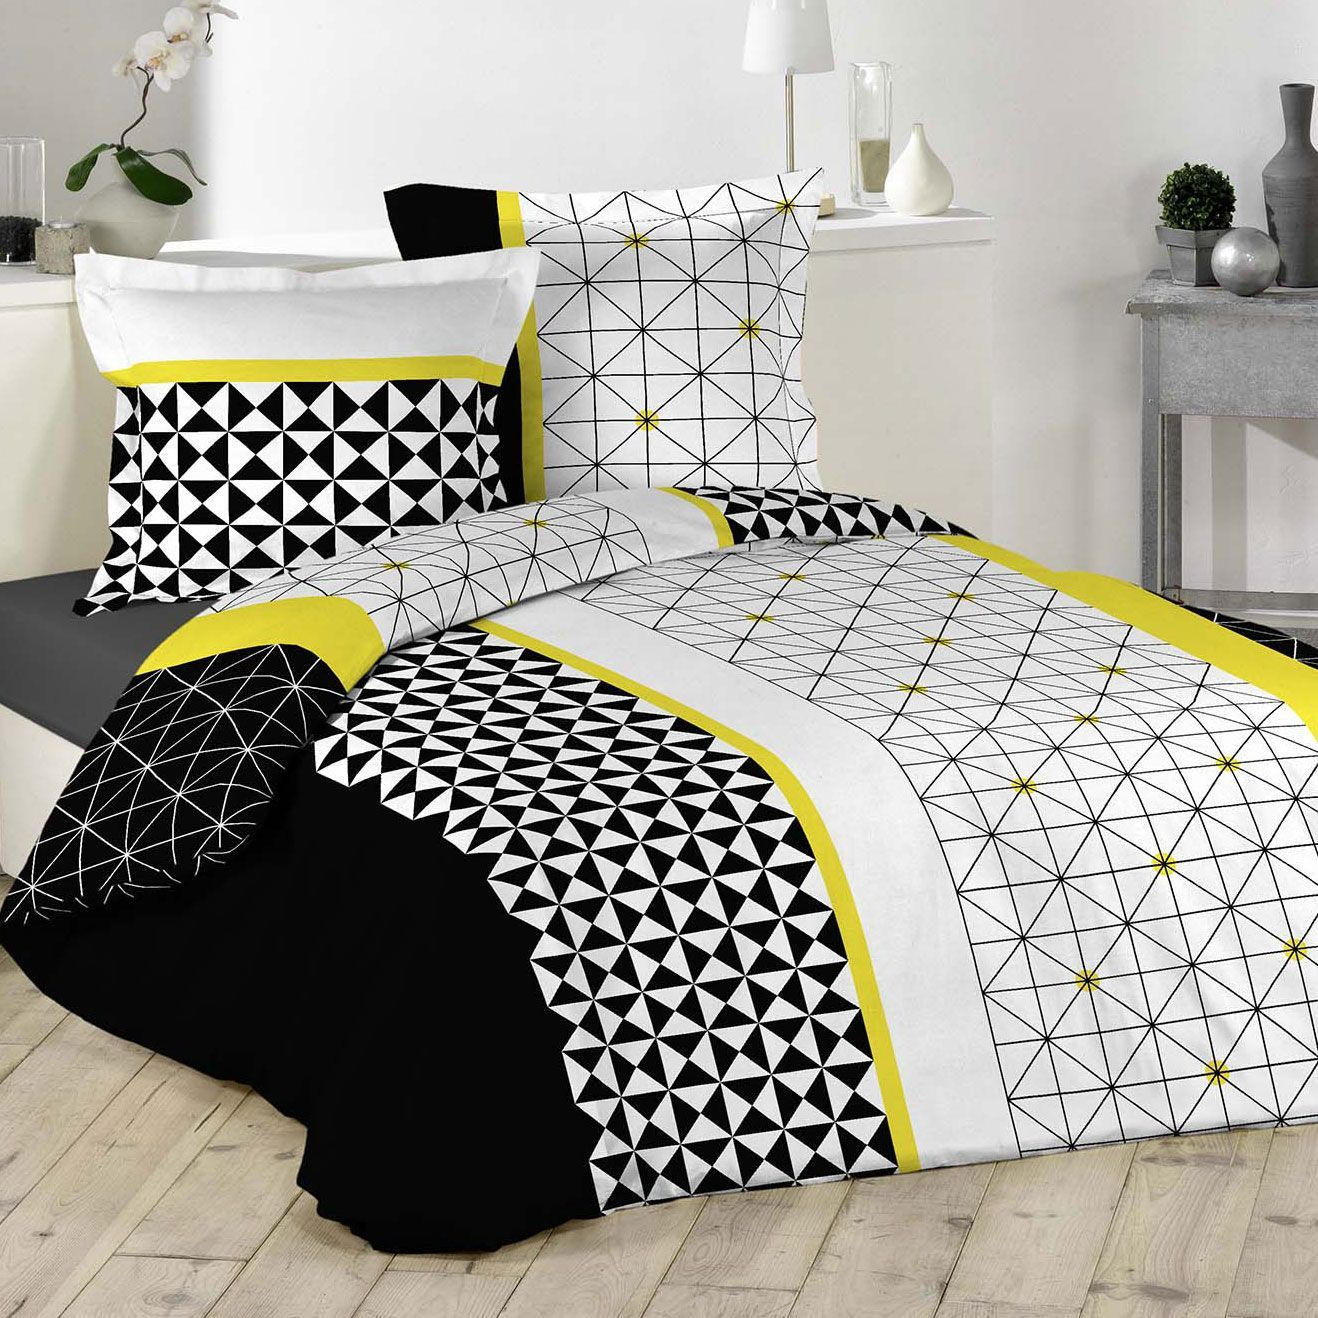 housse de couette et deux taies yellometric 100 coton 260 cm jaune housse de couette eminza. Black Bedroom Furniture Sets. Home Design Ideas